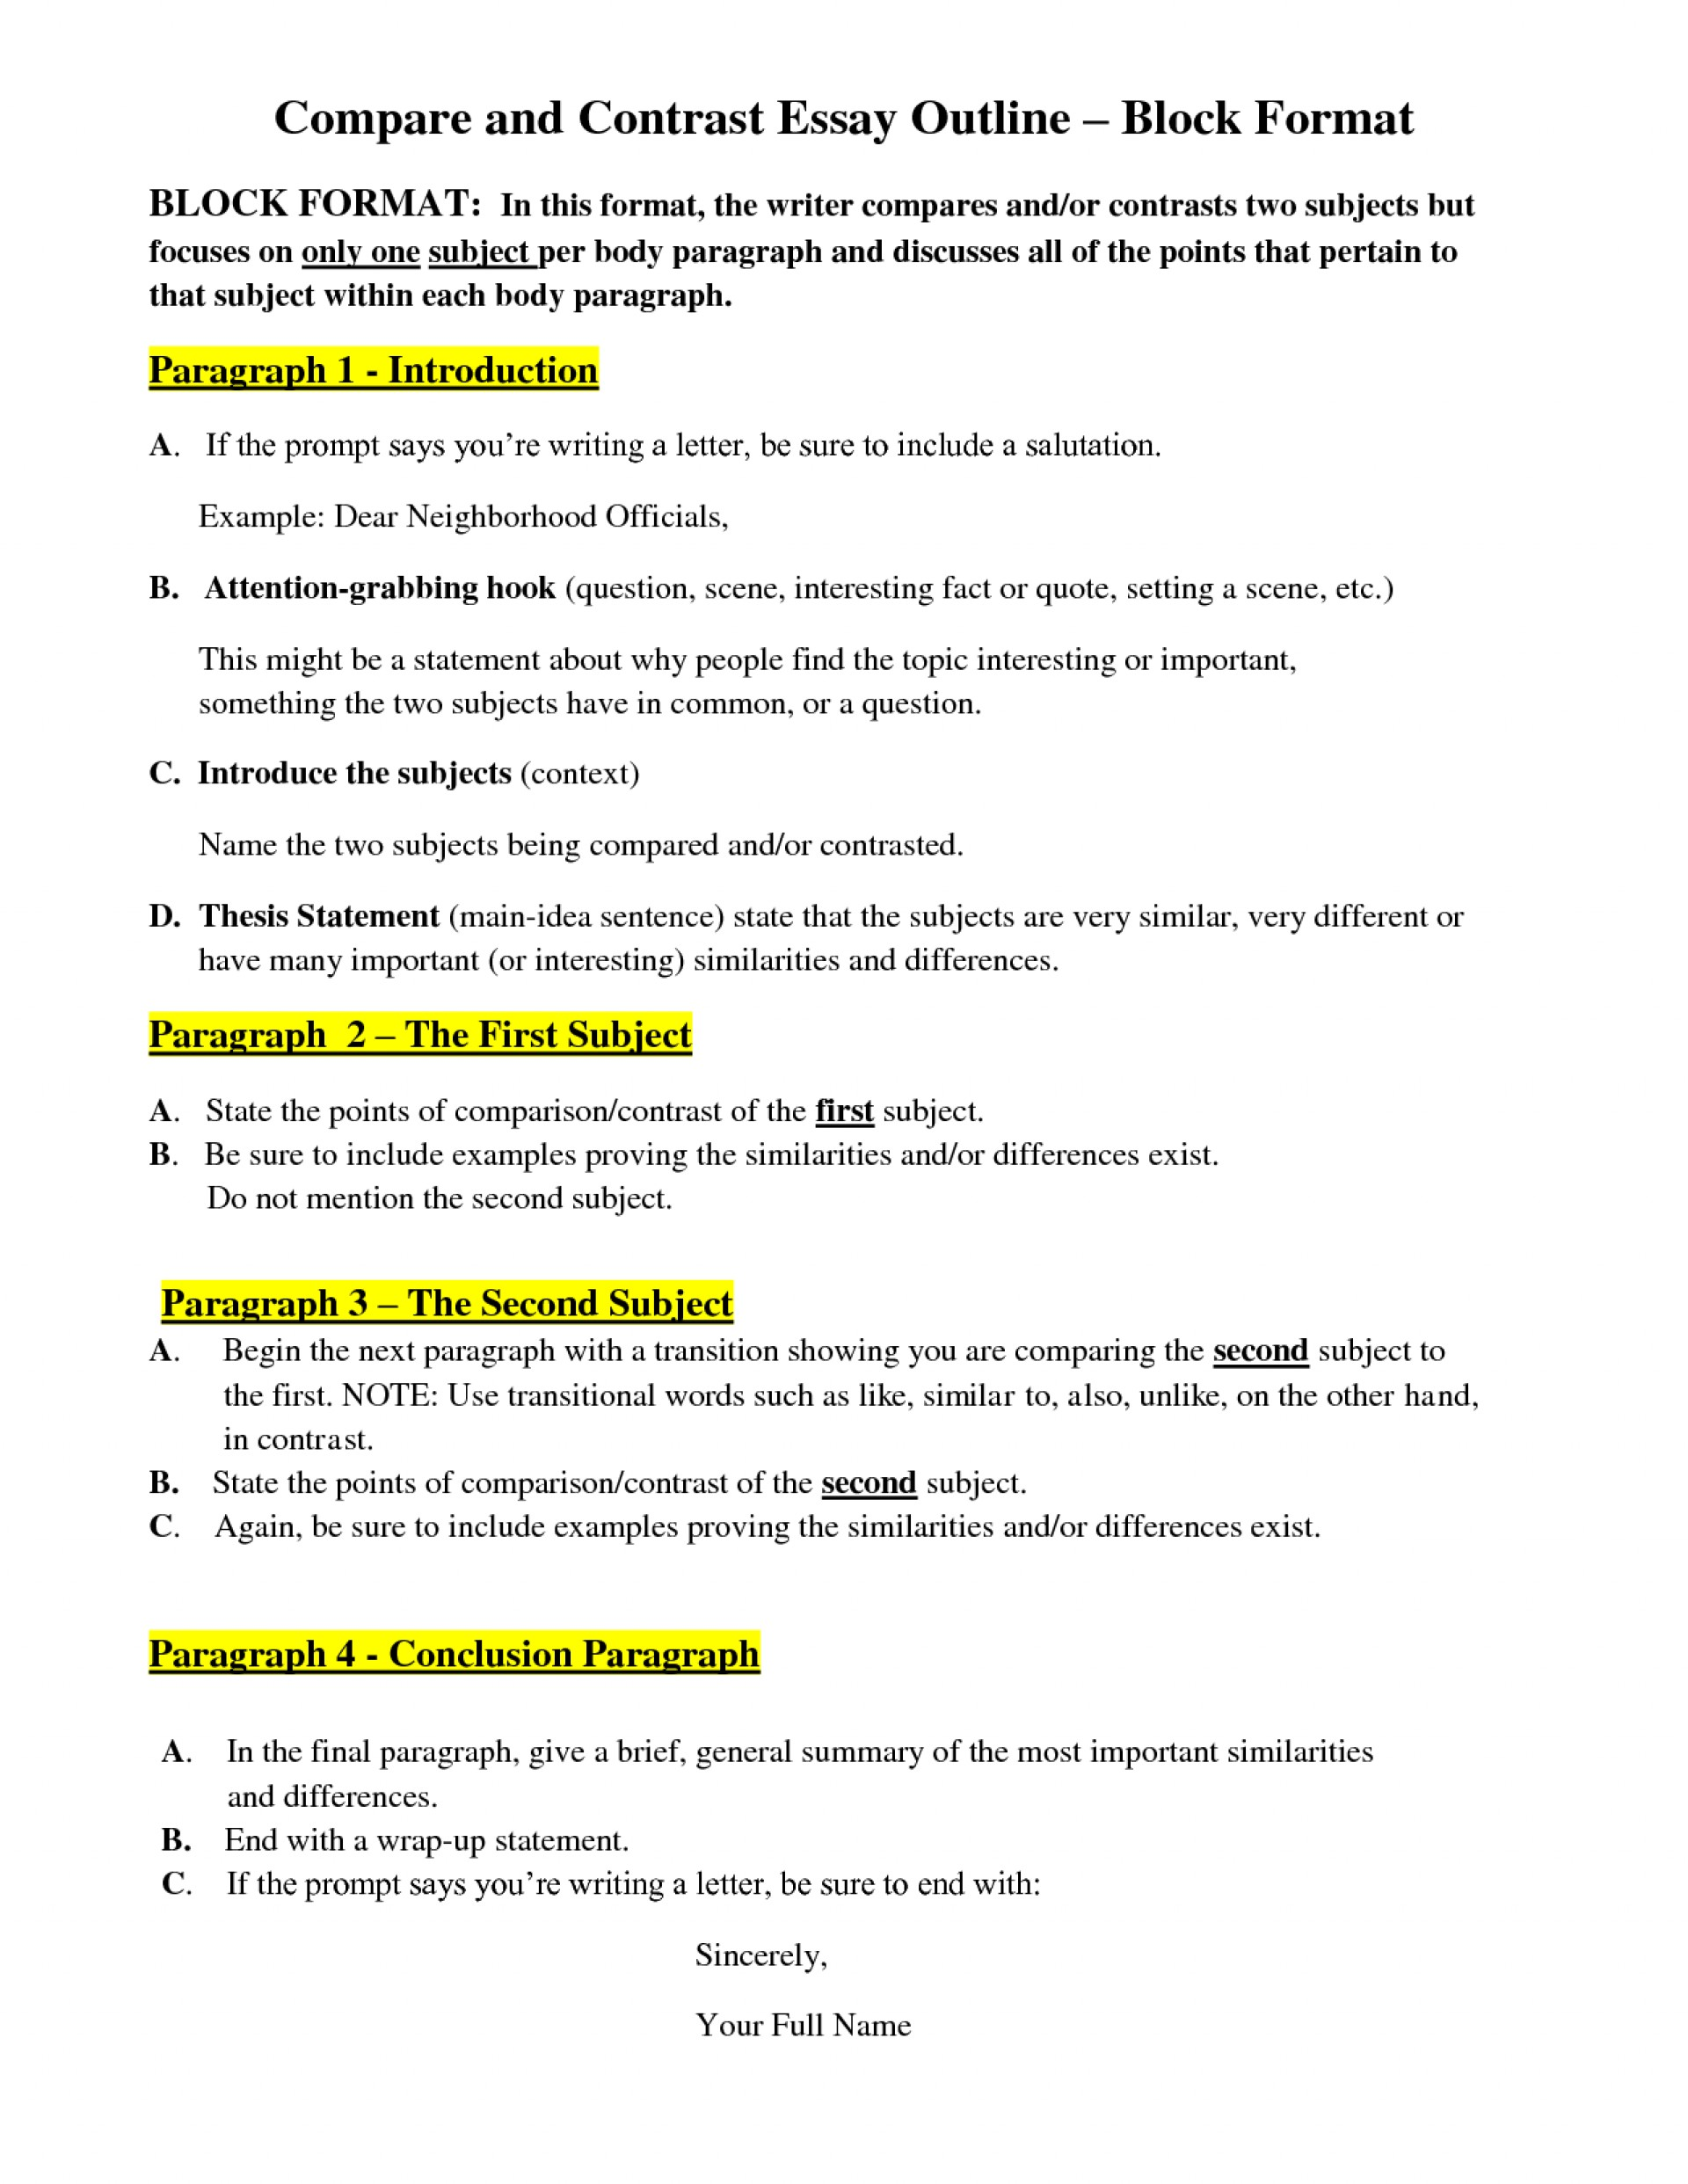 003 Compare And Contrast Essay Structure Stupendous Ppt Format Outline 1920